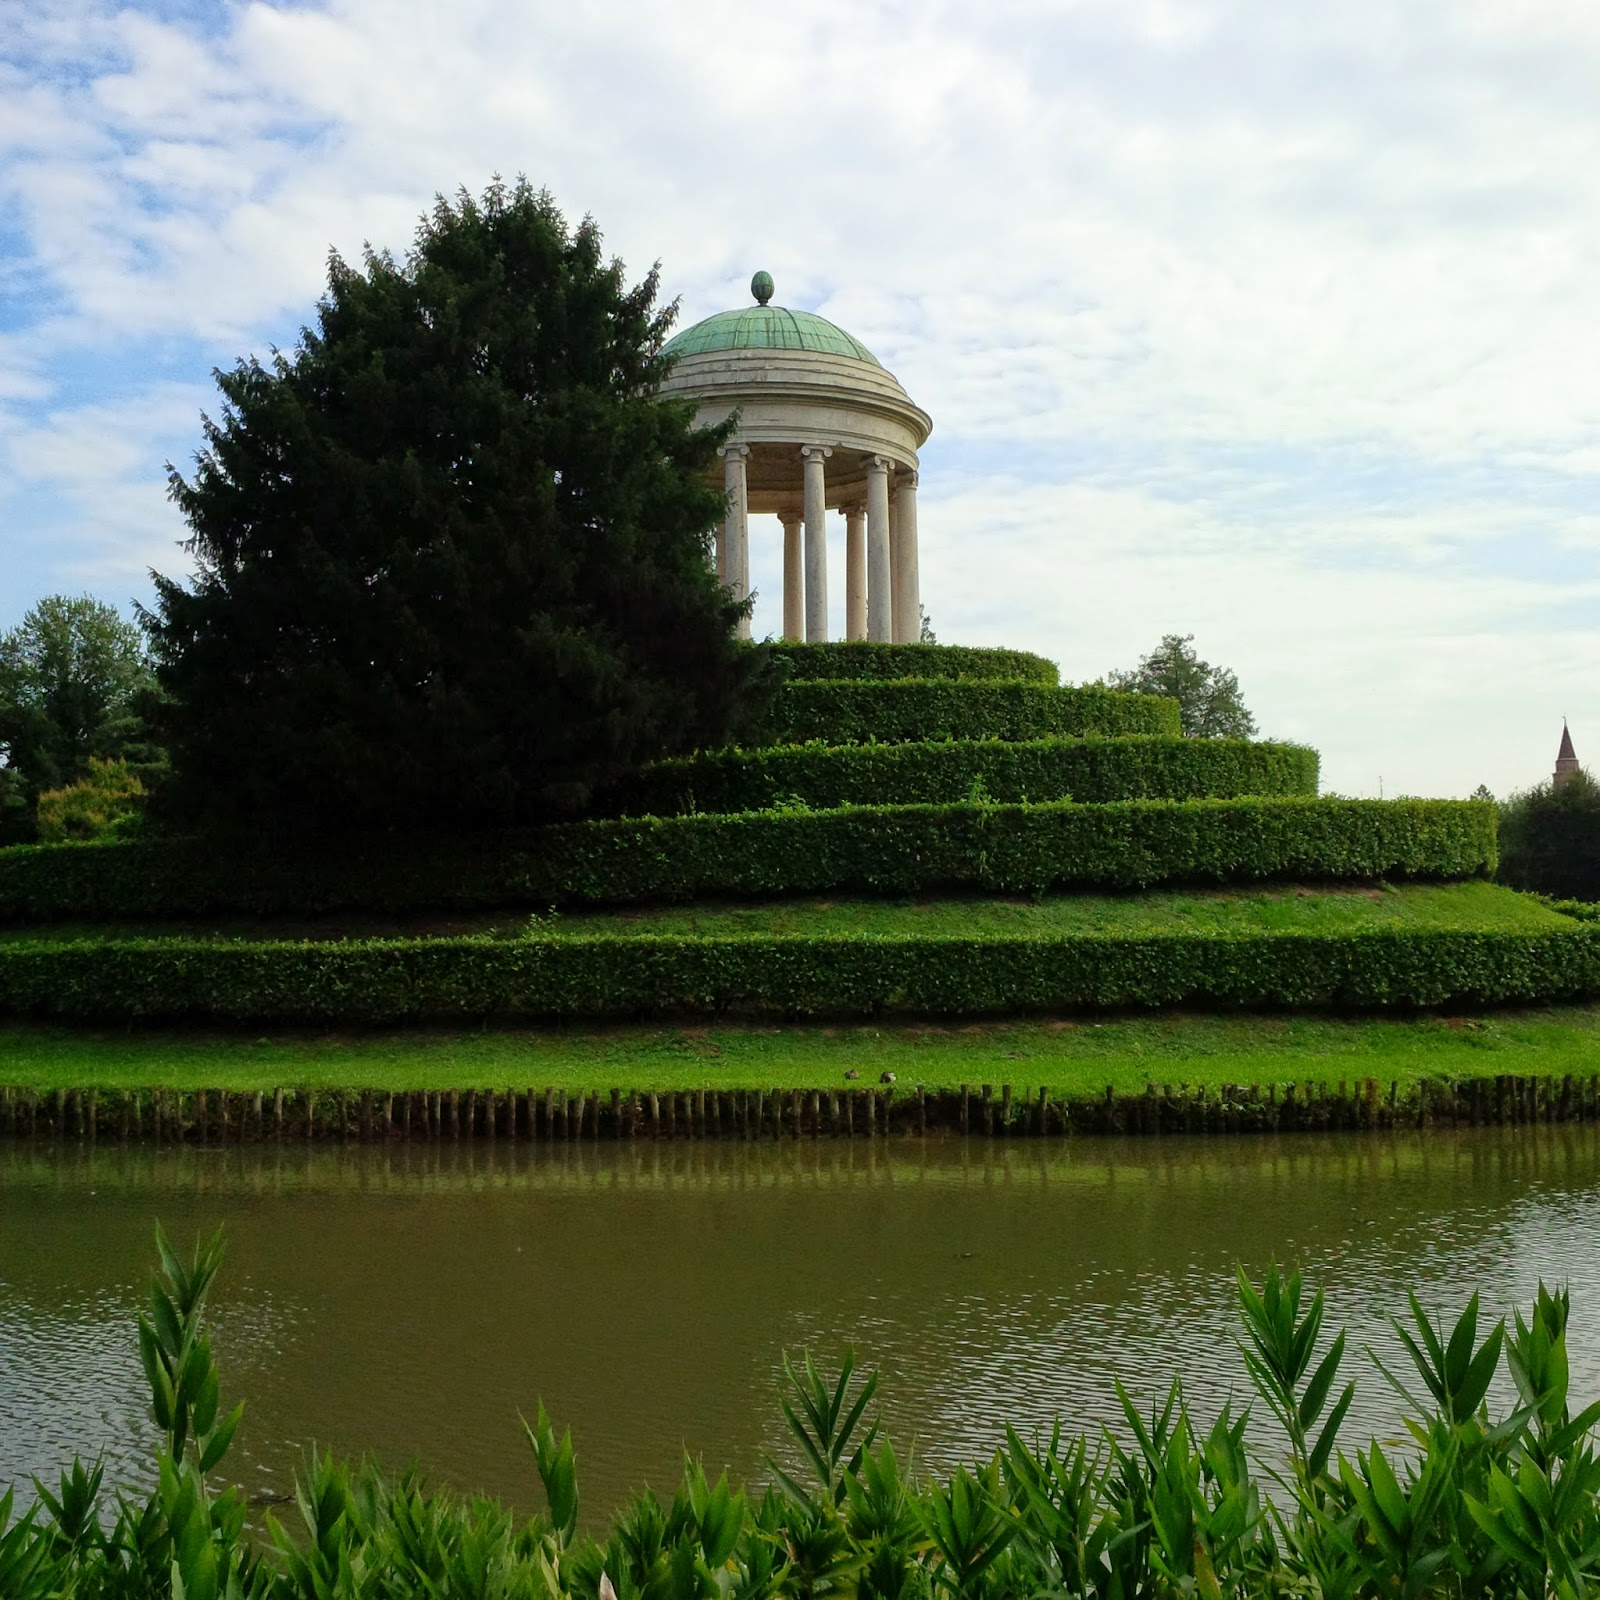 The classical temple in Parco Querini in Vicenza